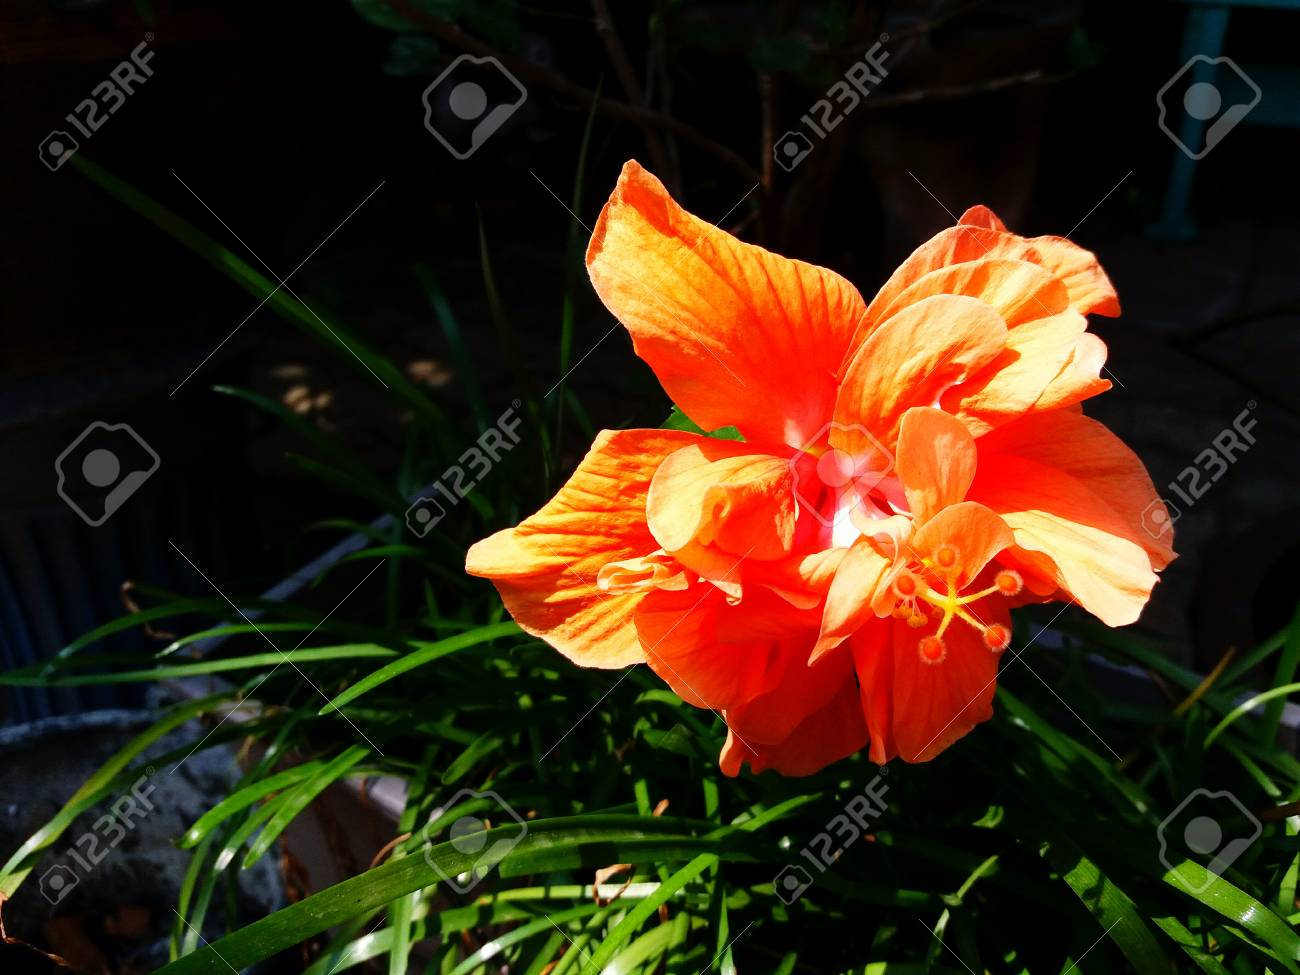 Close up beautiful orange shoe flower hibiscus or chinese rose close up beautiful orange shoe flower hibiscus or chinese rose blooming with green leaves izmirmasajfo Image collections